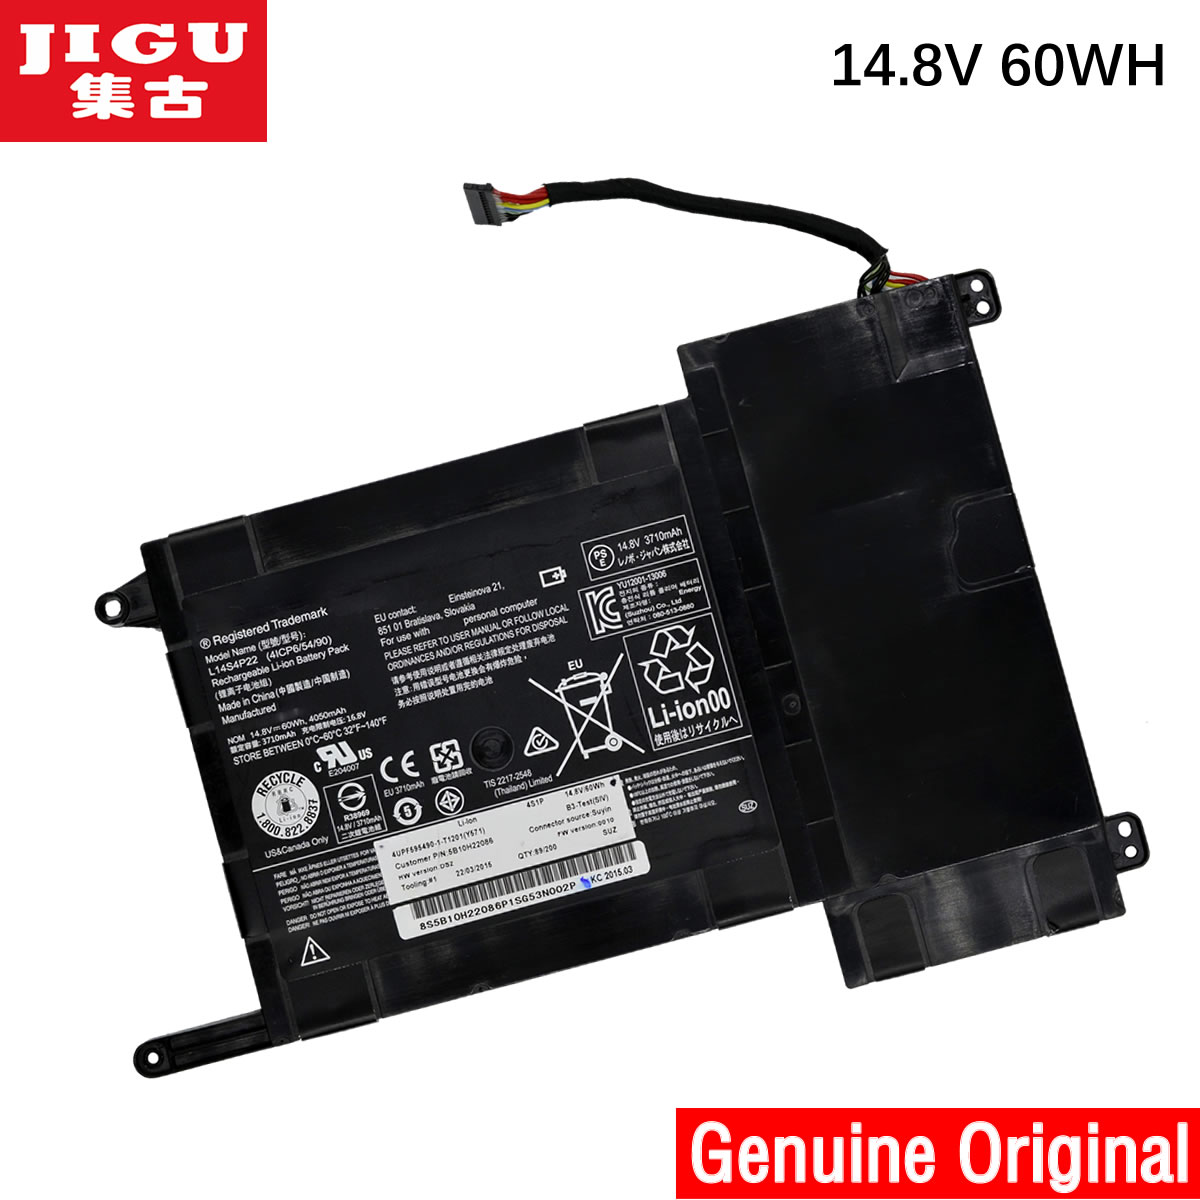 JIGU New original L14M4P23 battery for Lenovo Y700 series Y700-17iSK 5B10H22084 14.8V 60WH jigu original new 66wh 15v c41n1337 battery for asus portable aio pt2001 19 5 inch batteria batteries high quality